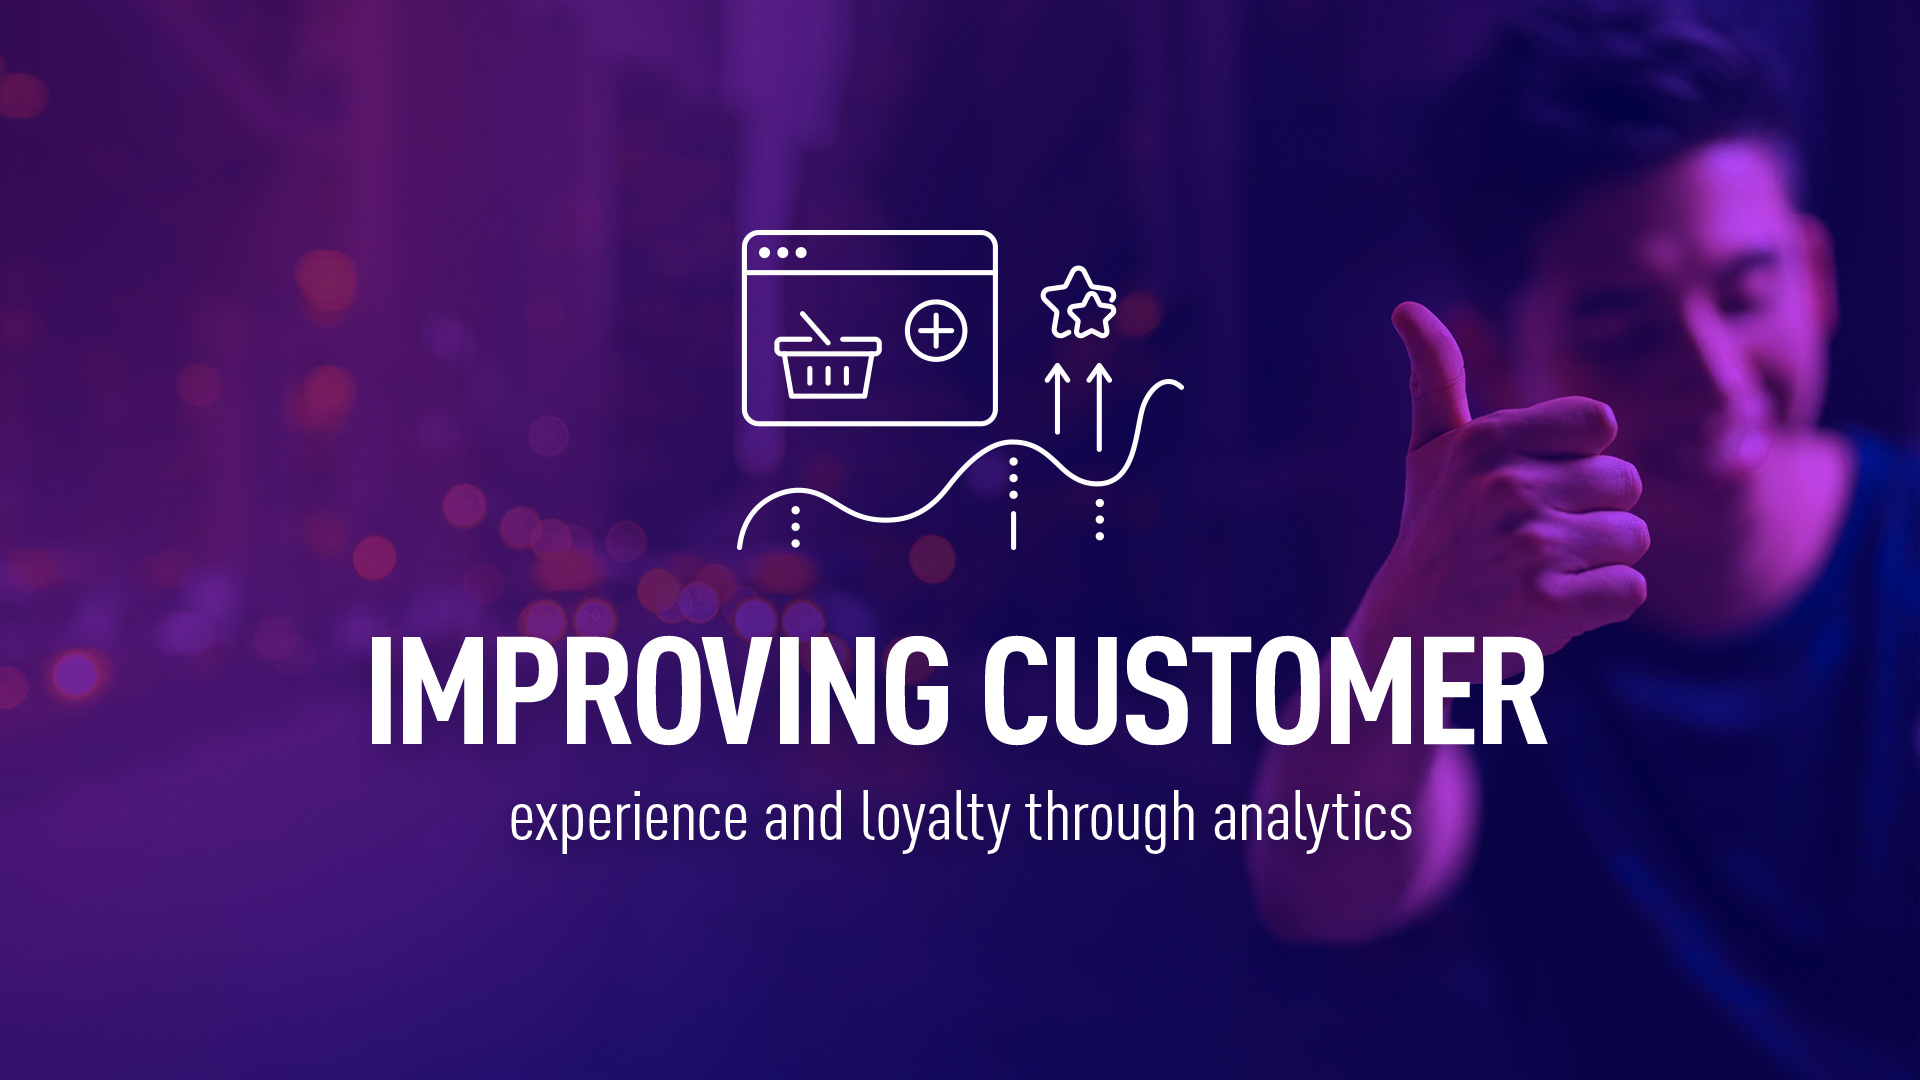 Improving loyalty and experience with customer analytics